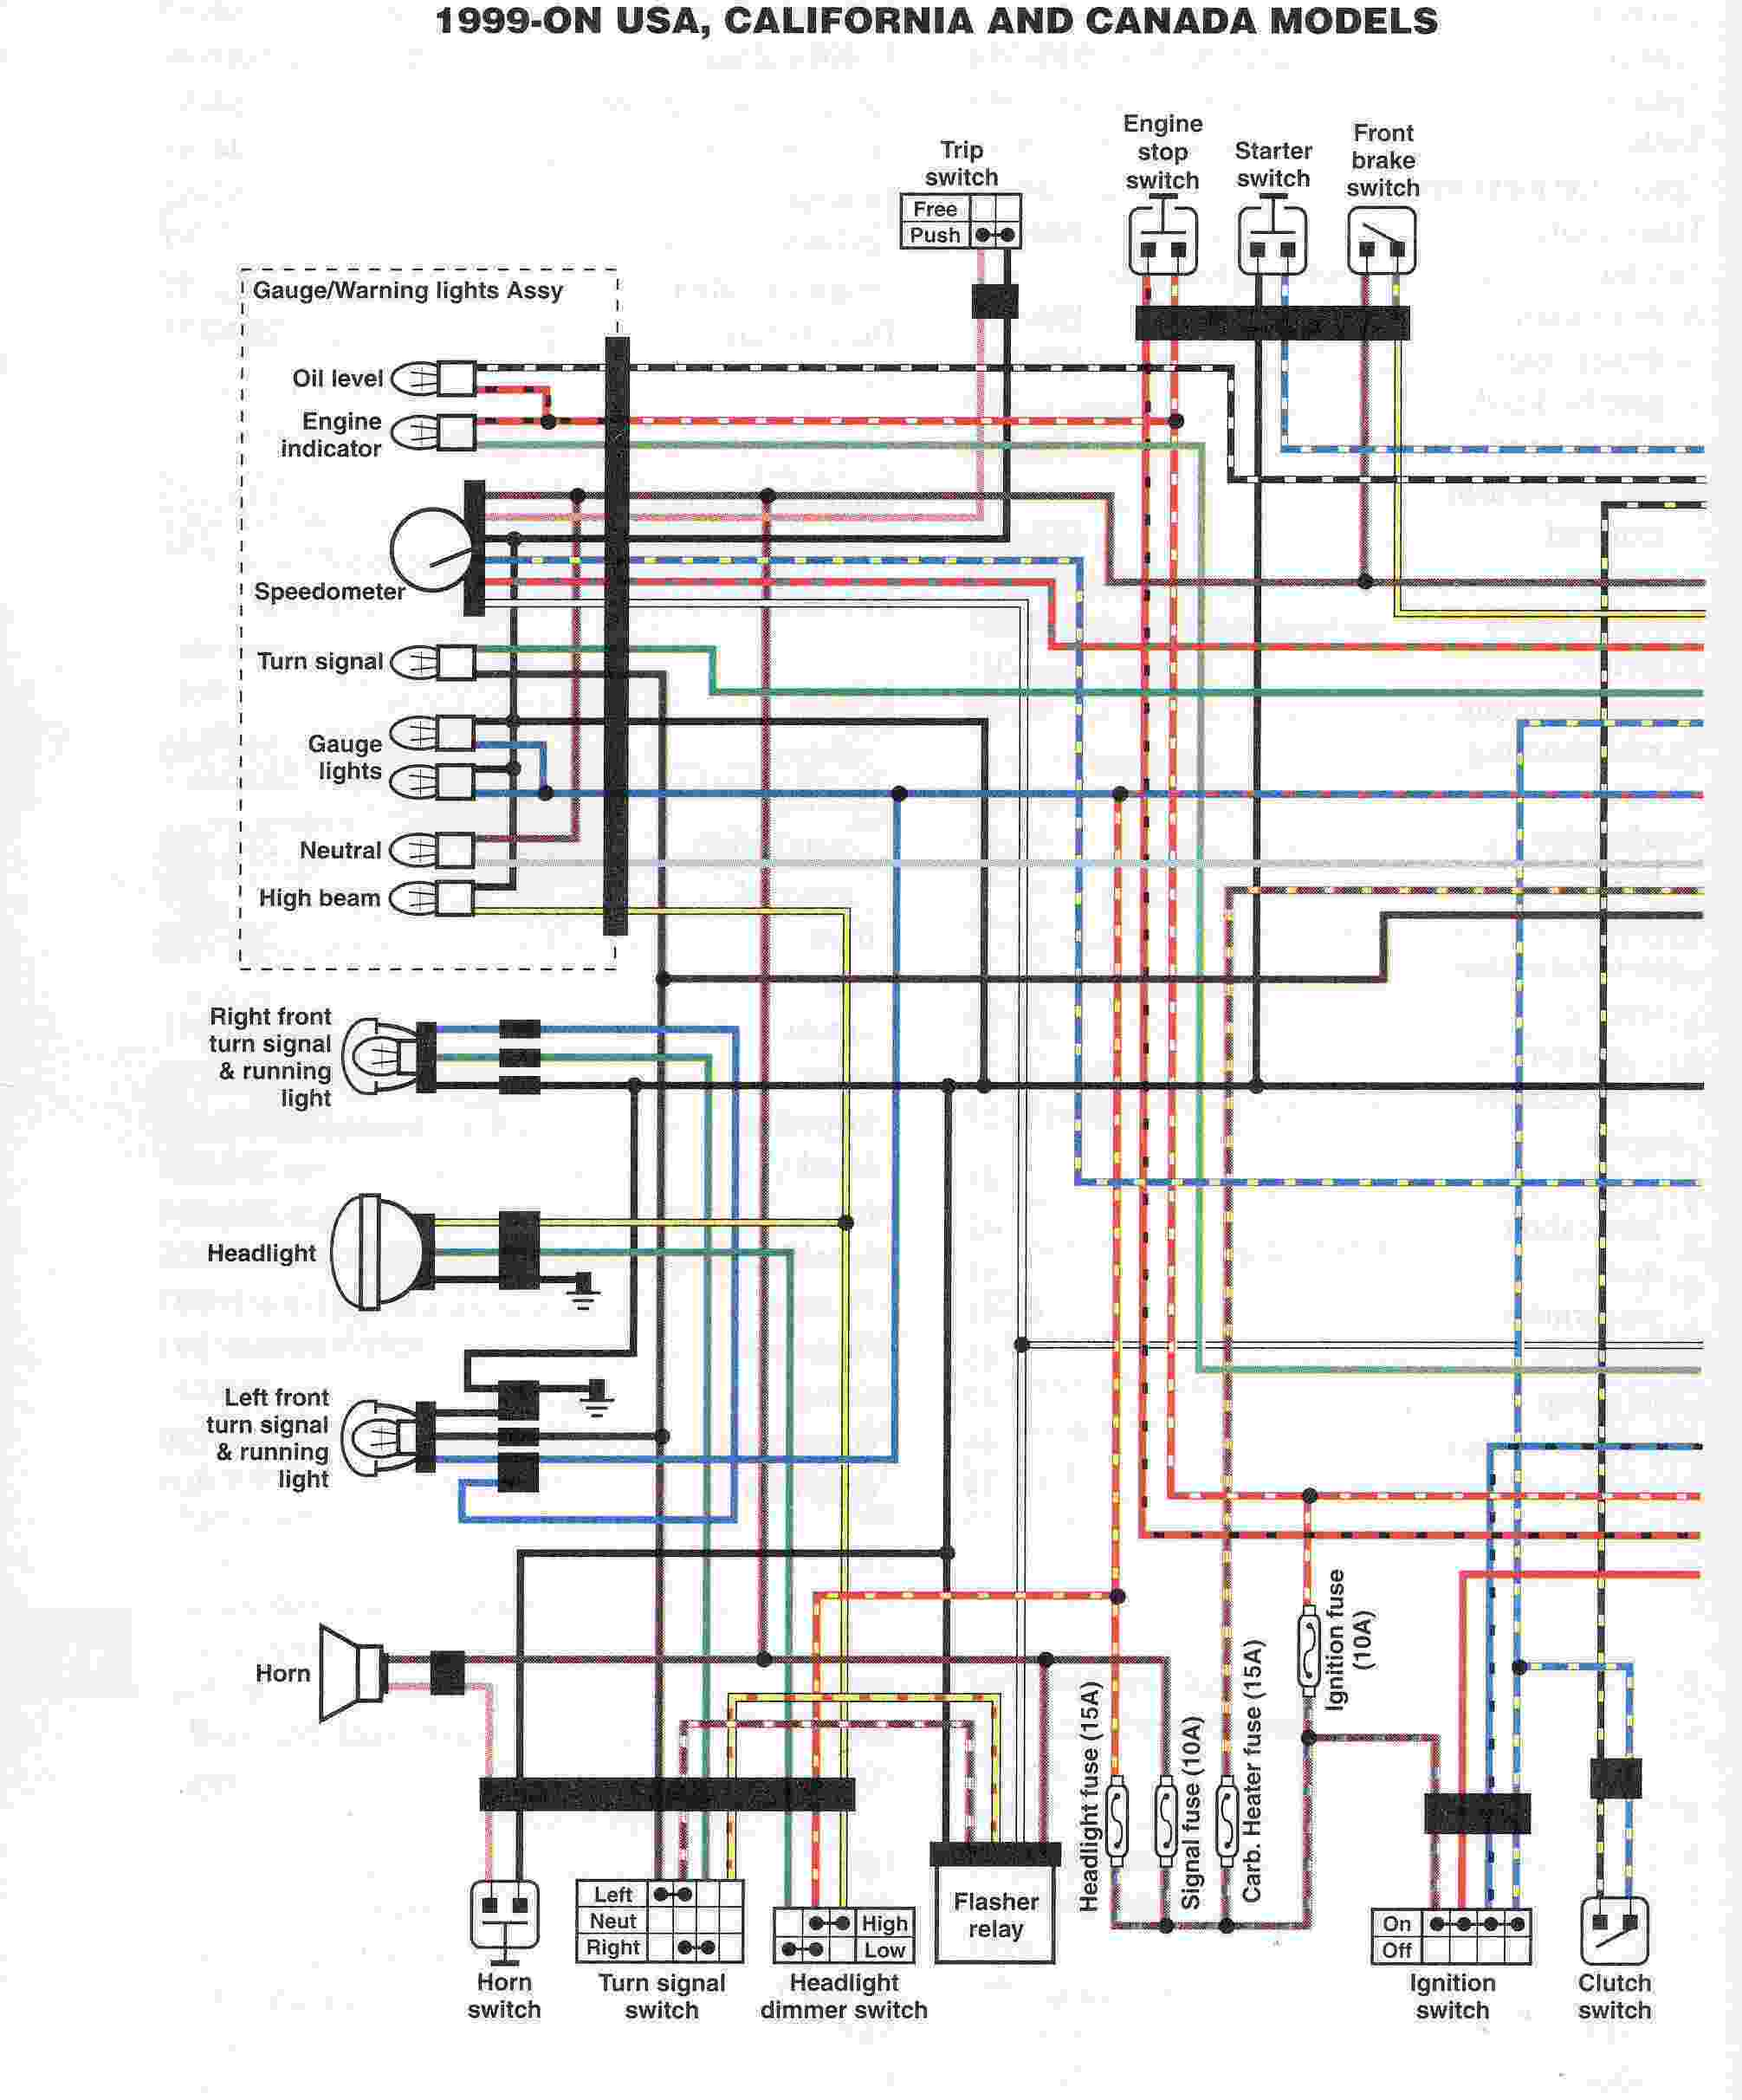 Diagram 2012 Yamaha Raider Wiring Diagram Full Version Hd Quality Wiring Diagram Diagramreppv Santaclausvillagesalerno It